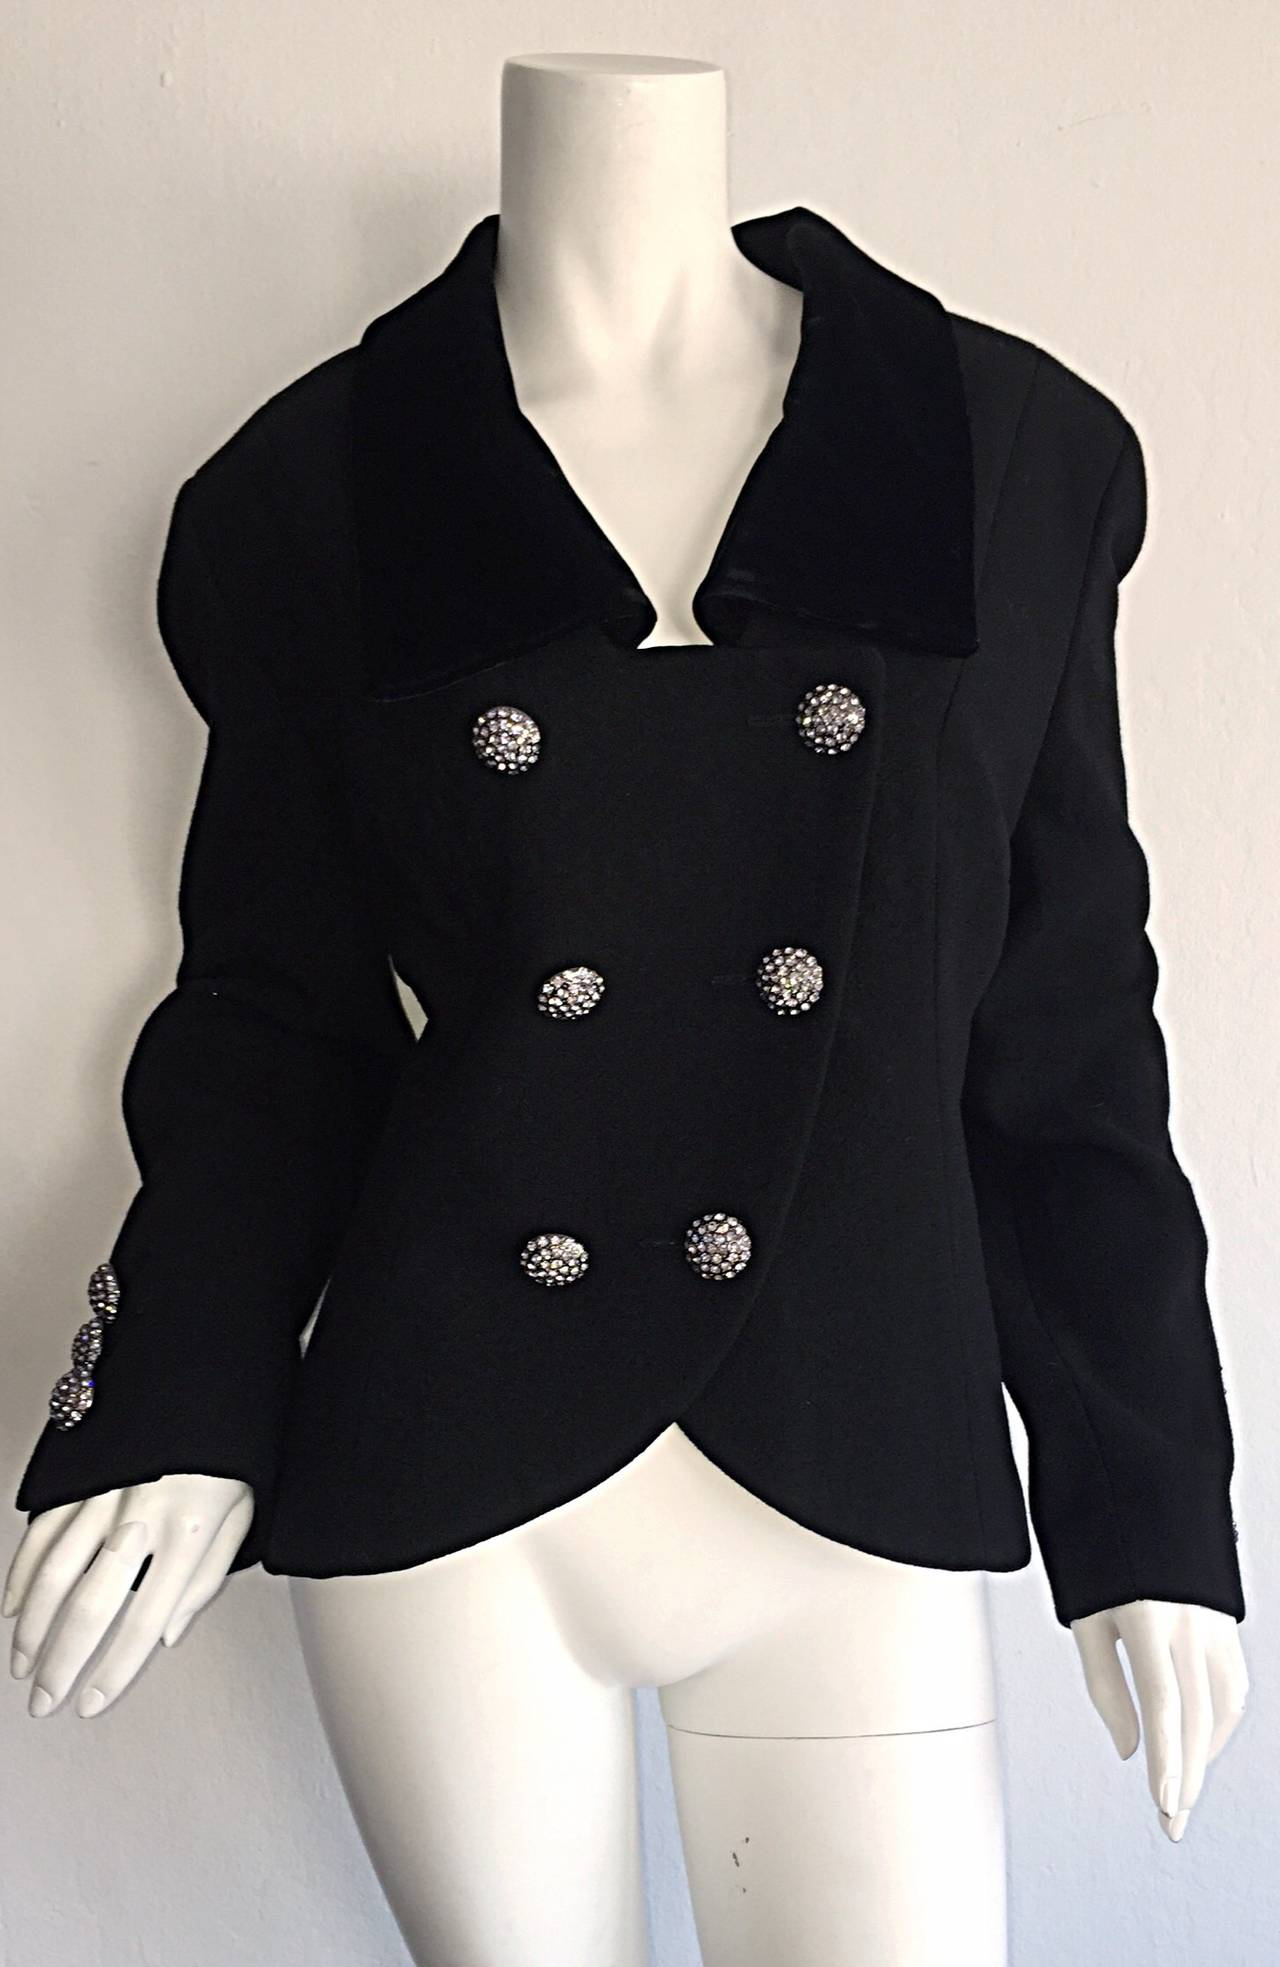 Beautiful vintage Andrea Odicini Couture black skirt suit! I love the fact that both pieces are equally as impressive as separates, and can easily make their way into any wardrobe! Rhinestone buttons on double breasted blazer at bodice, and cuffs.